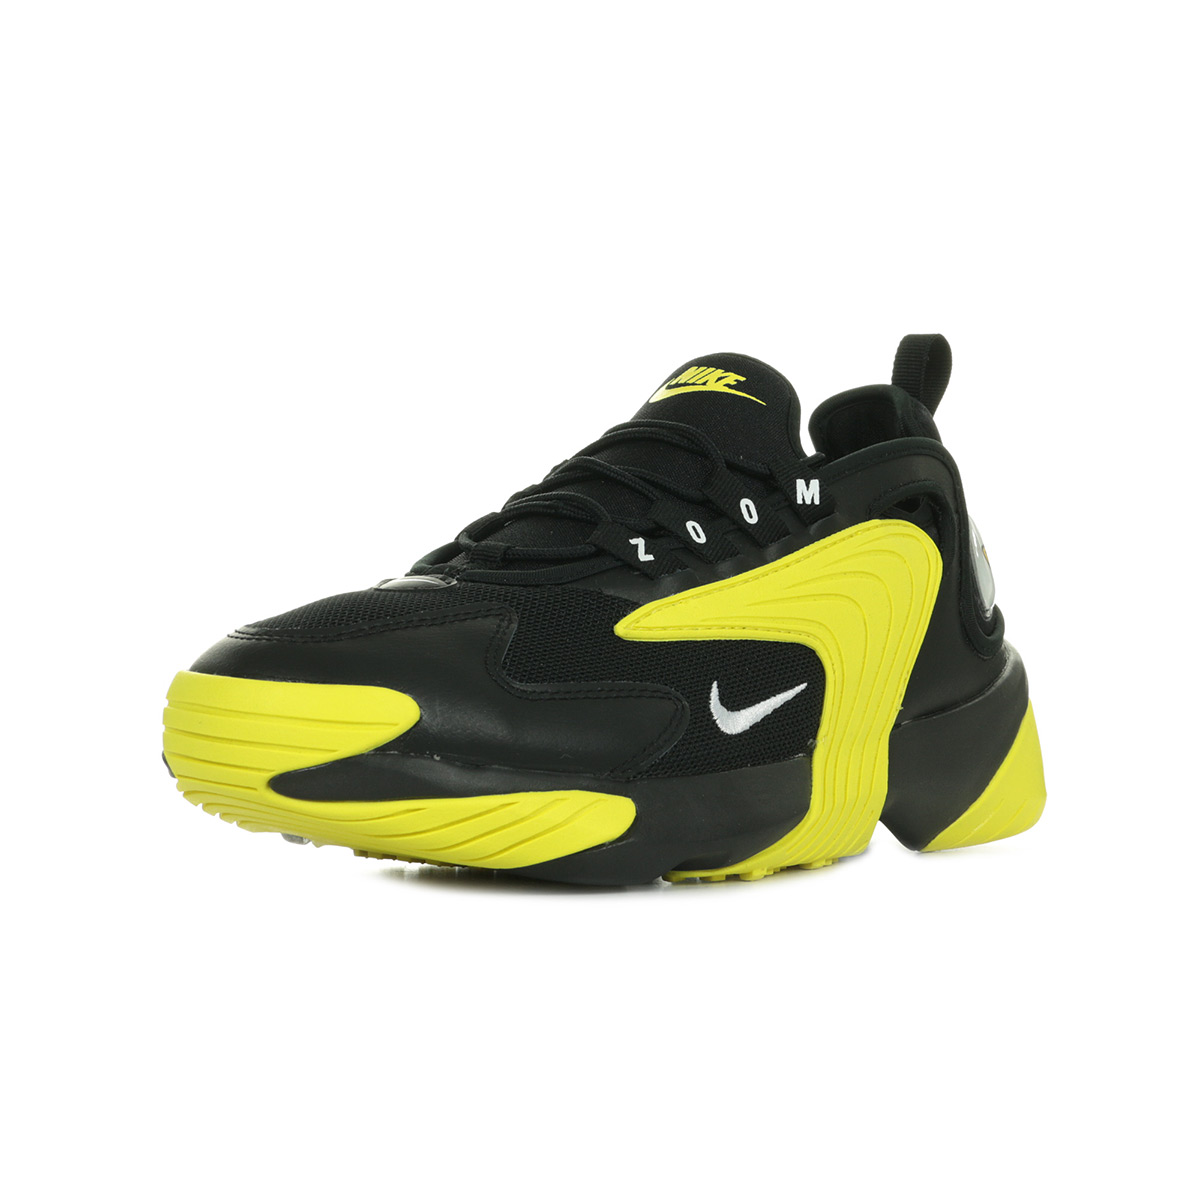 fashion styles quite nice look out for Nike Zoom 2K